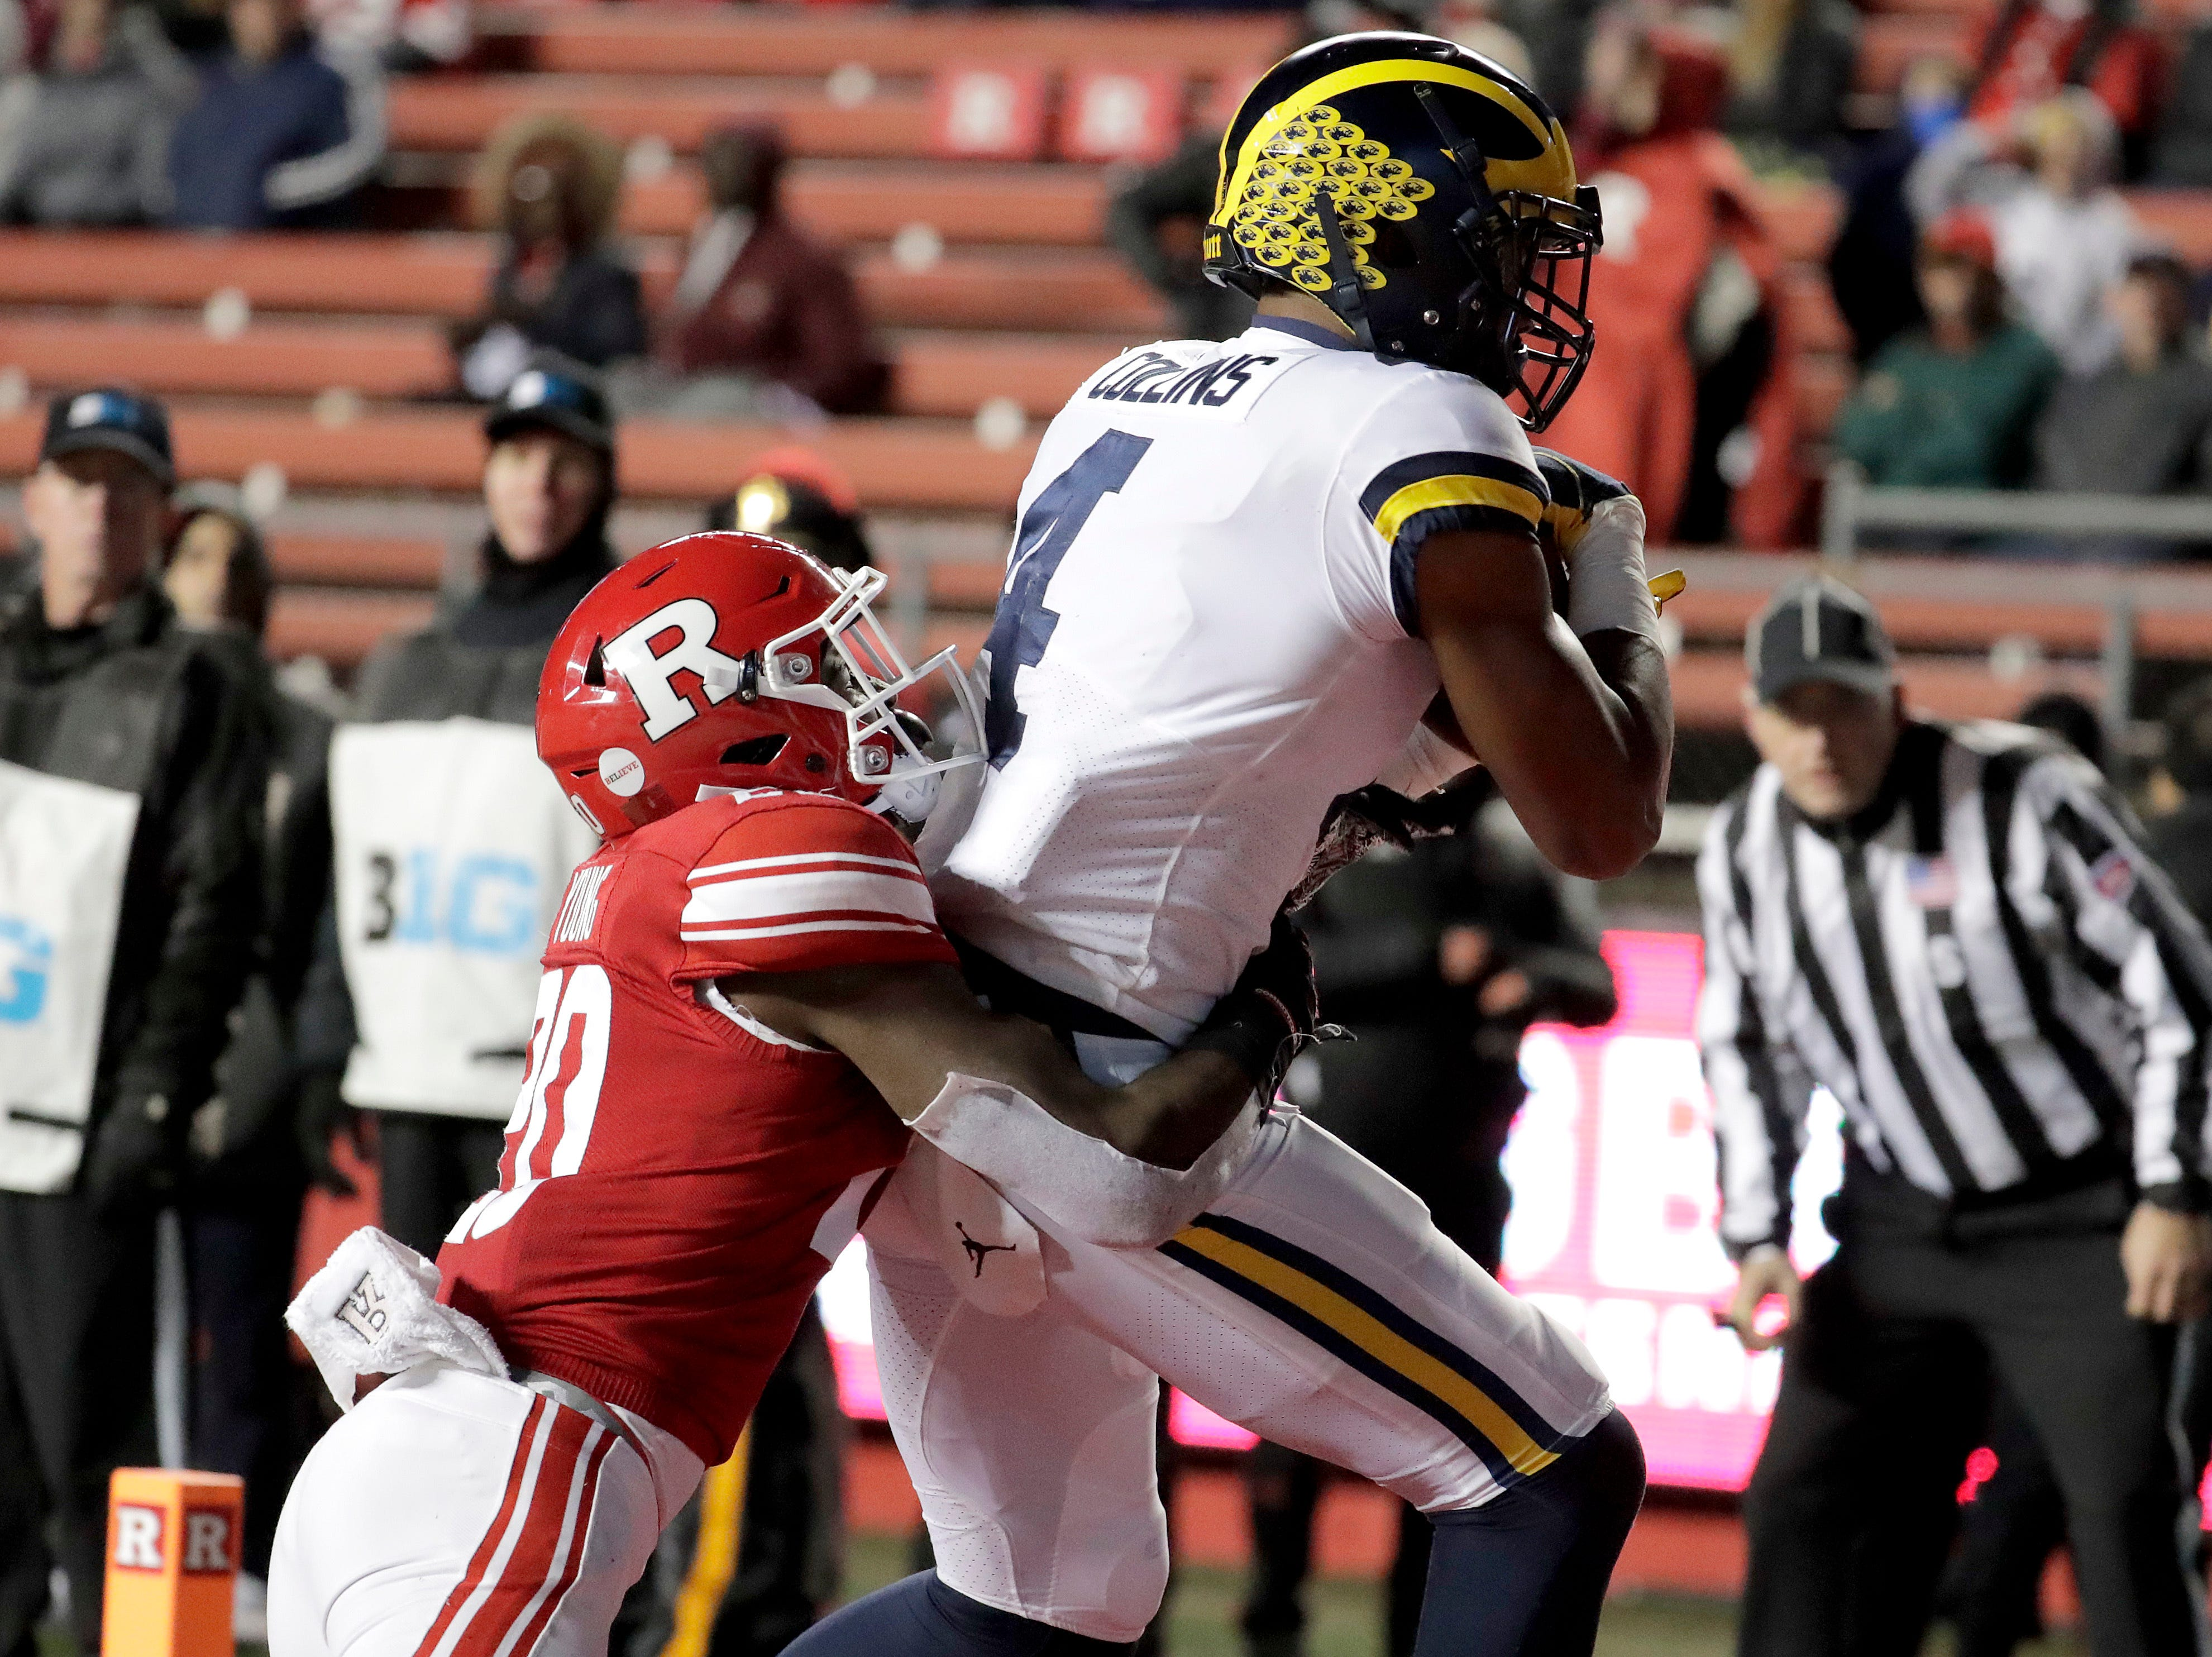 Michigan wide receiver Nico Collins, right, pulls in a touchdown catch on a pass from quarterback Shea Patterson as Rutgers defensive back Avery Young (20) tries to stop him.